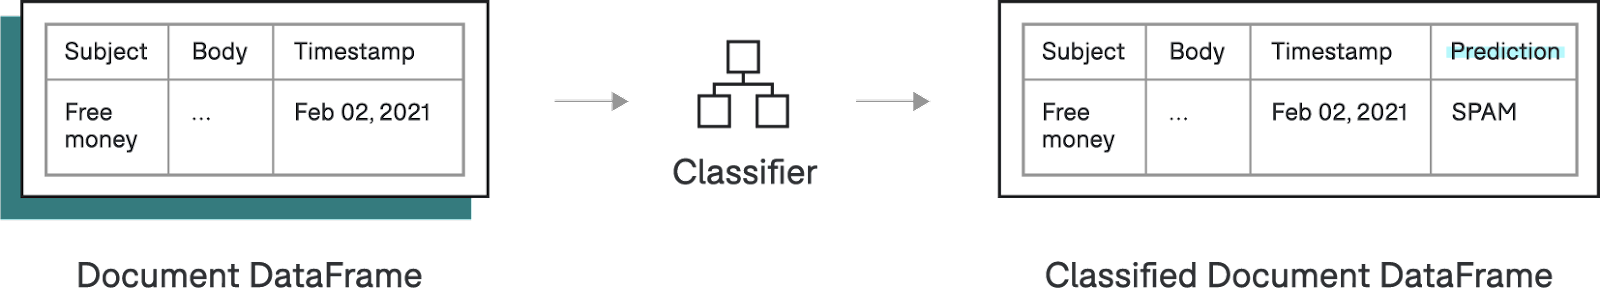 The process of a classification operator, taking input and outputting a prediction.